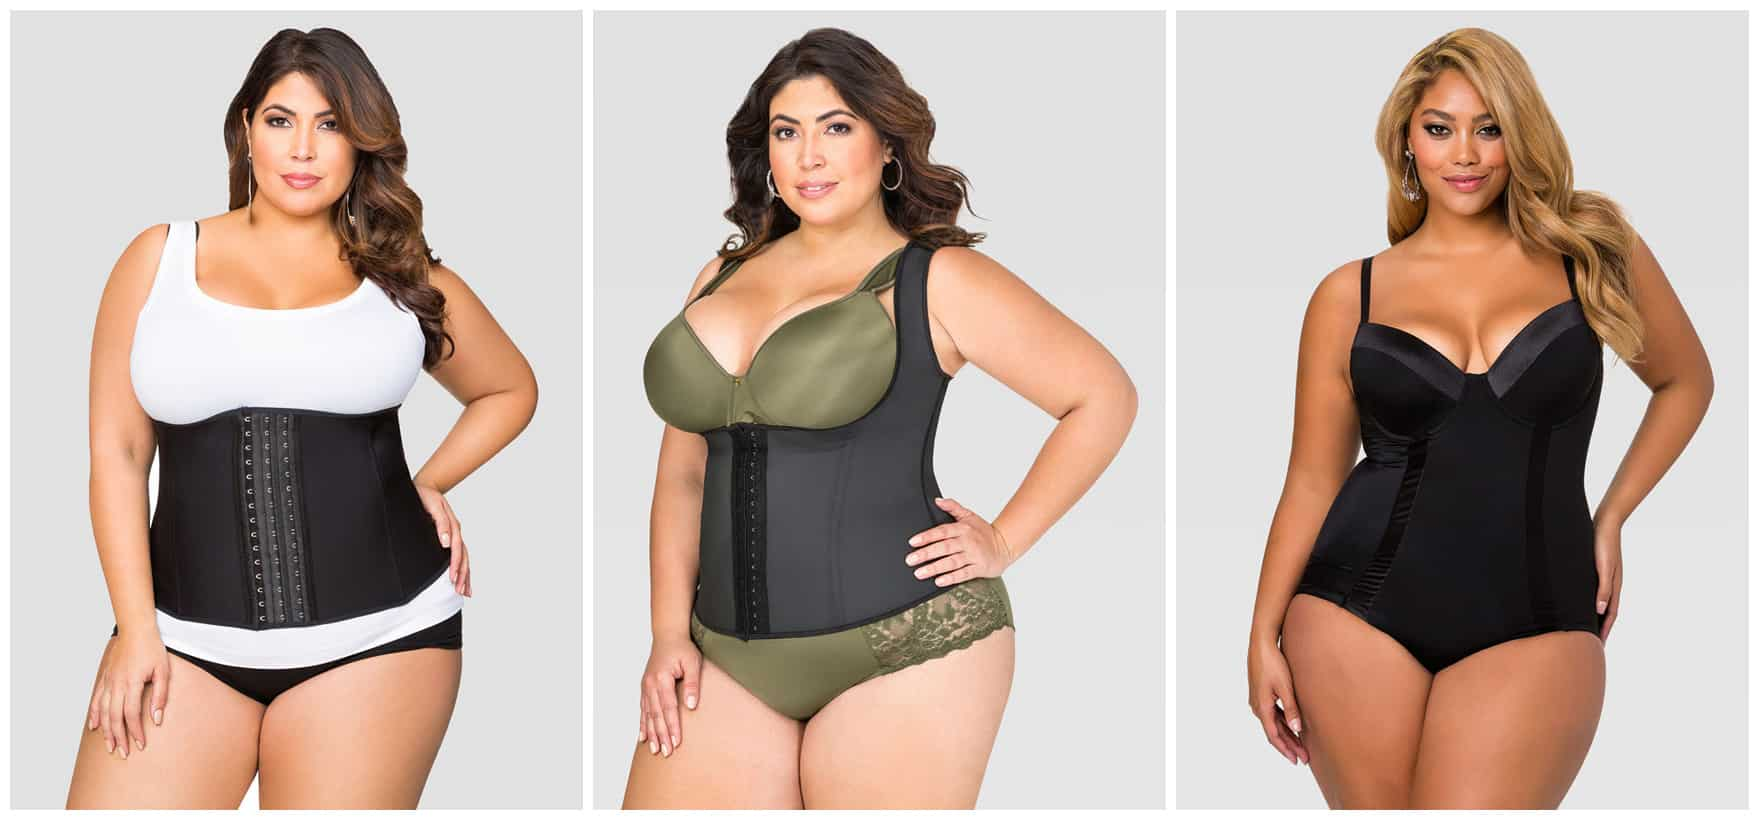 plus-sized waist trainer - me and my waist